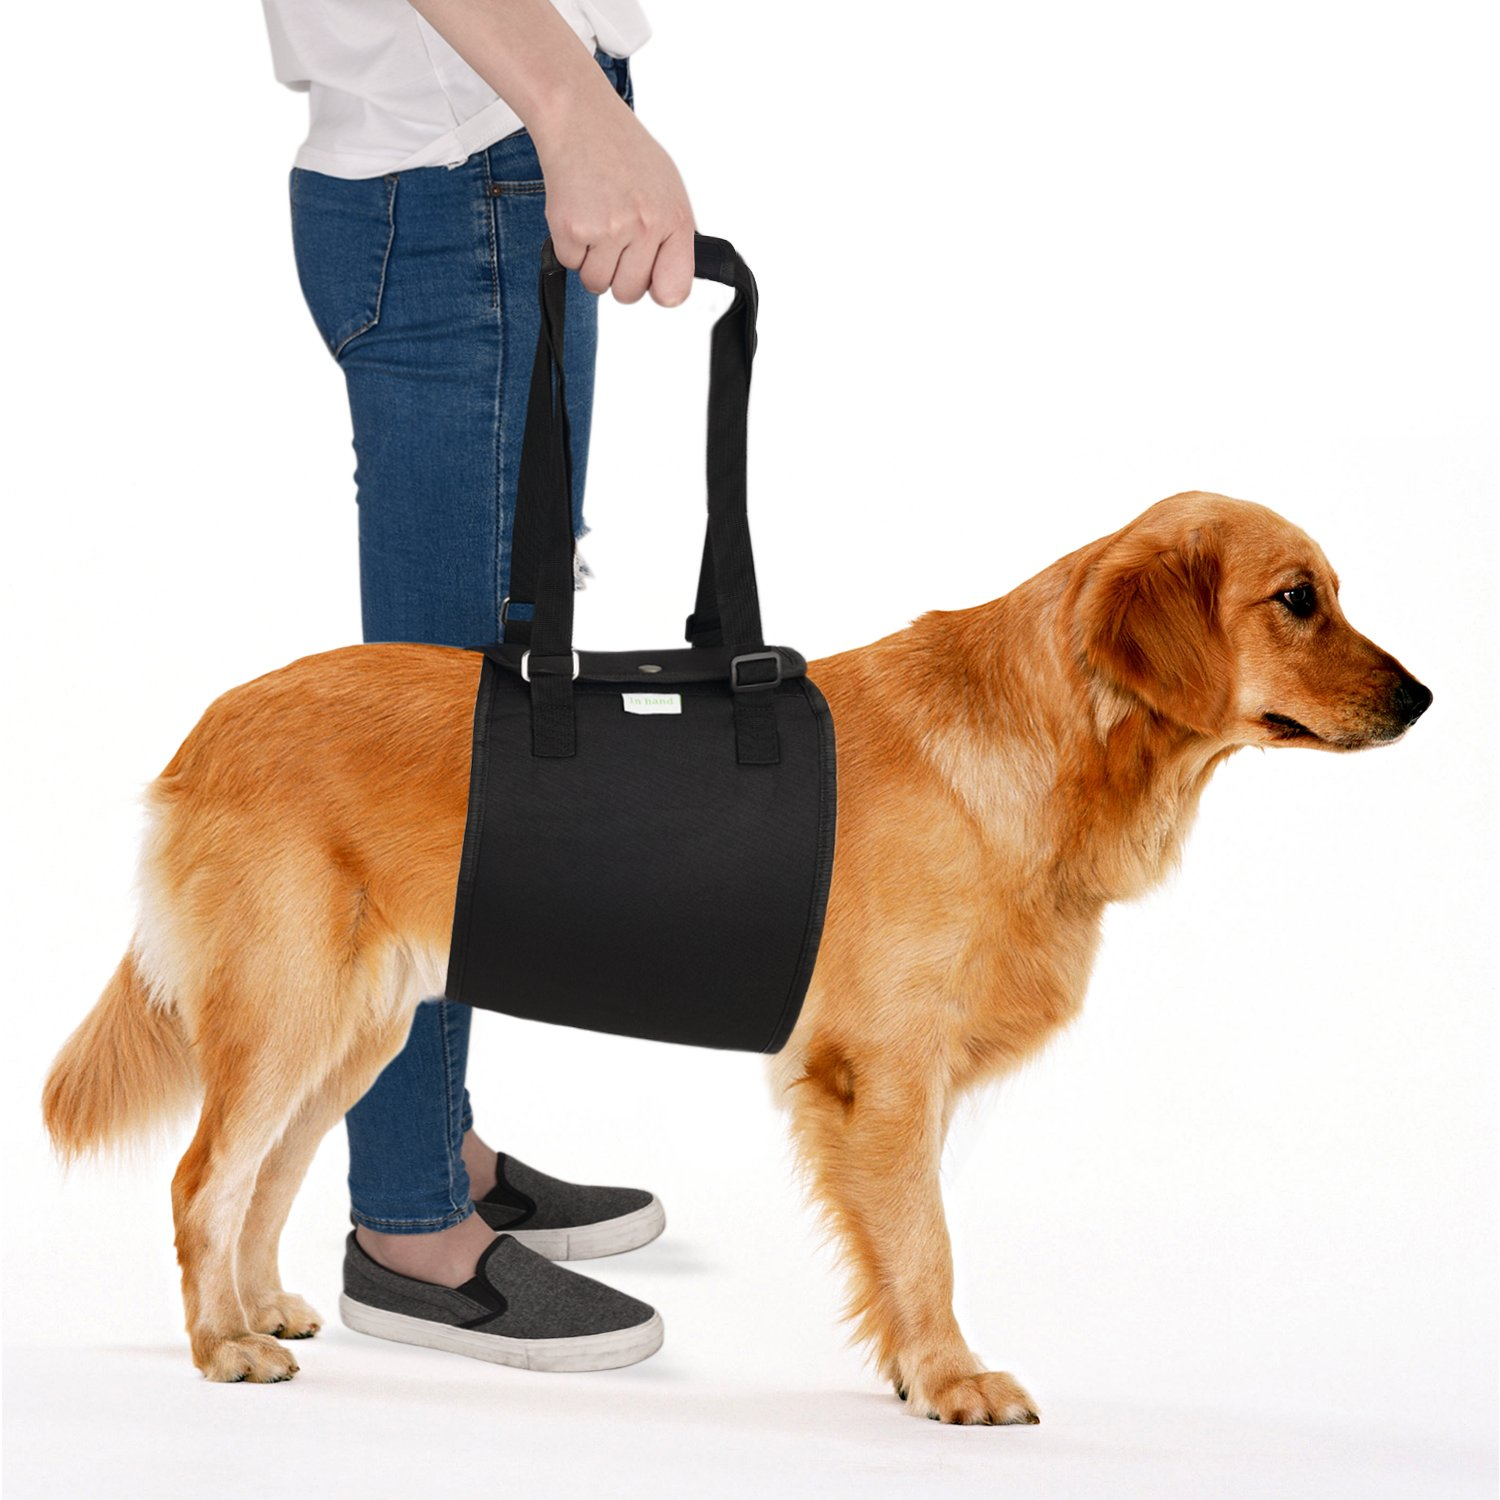 IN HAND Dog Support Harness, Dog Lift Harness with Adjustable Support Sling for Canine Aid, Helps Canine Arthritis, Rehabilitation, Poor Stability, Joint Injuries and Injured Dogs Walk